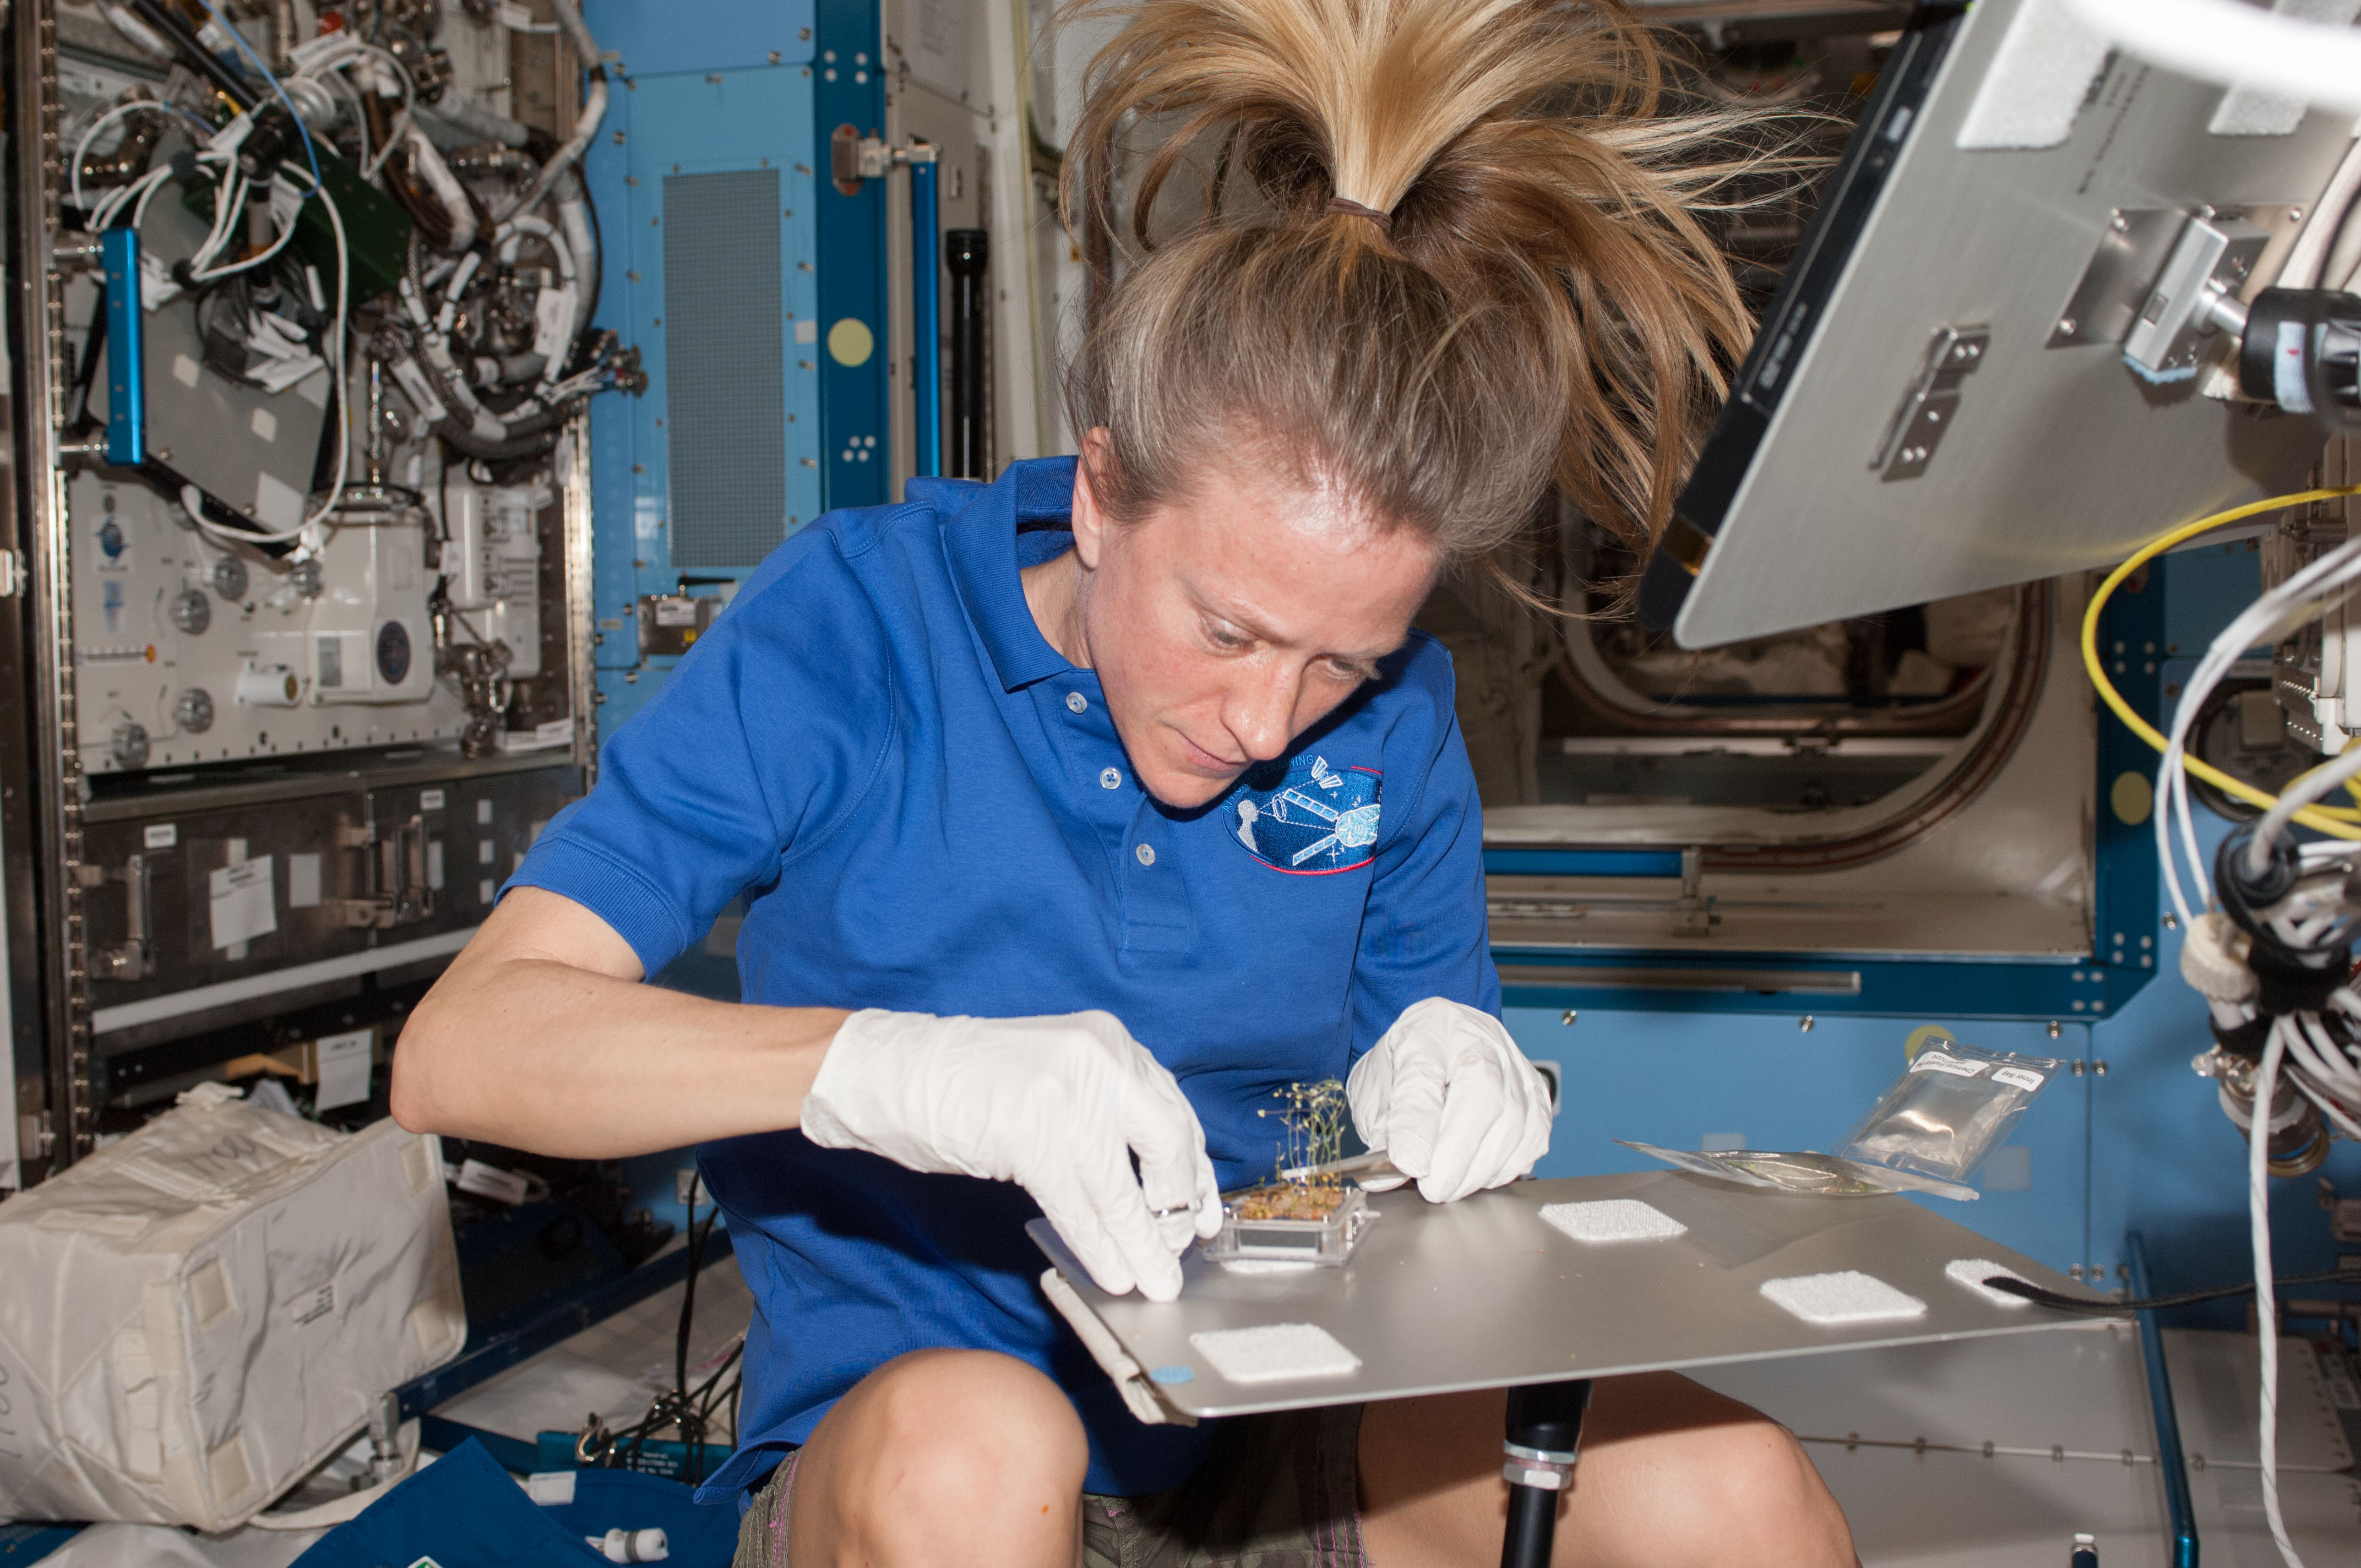 female astronaut drinking water in space - photo #7